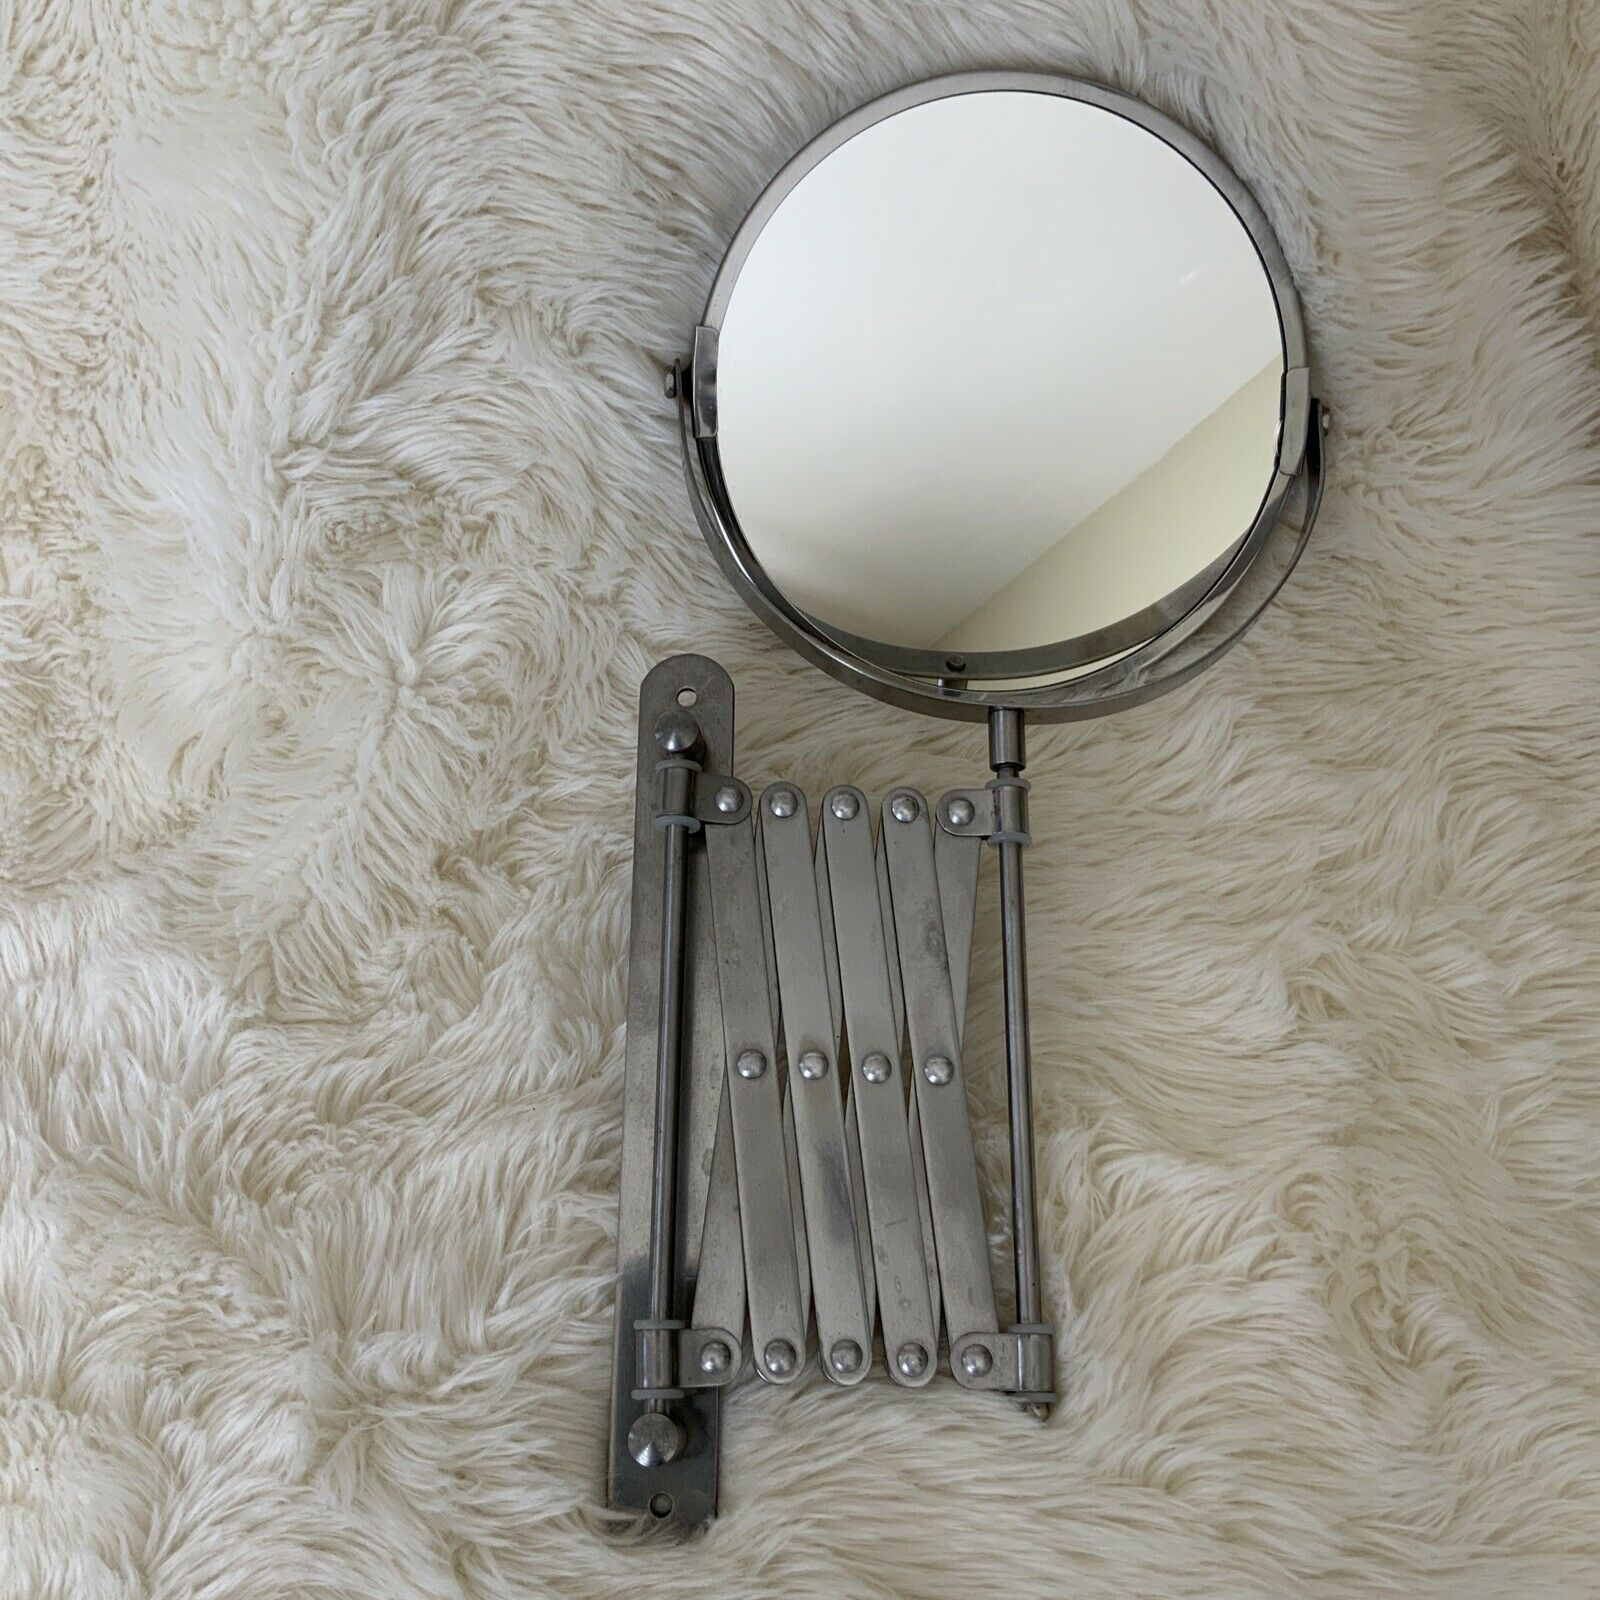 IKEA Frack Stainless Steel Wall Mount Bathroom Mirror w/ extension arm Vtg Style